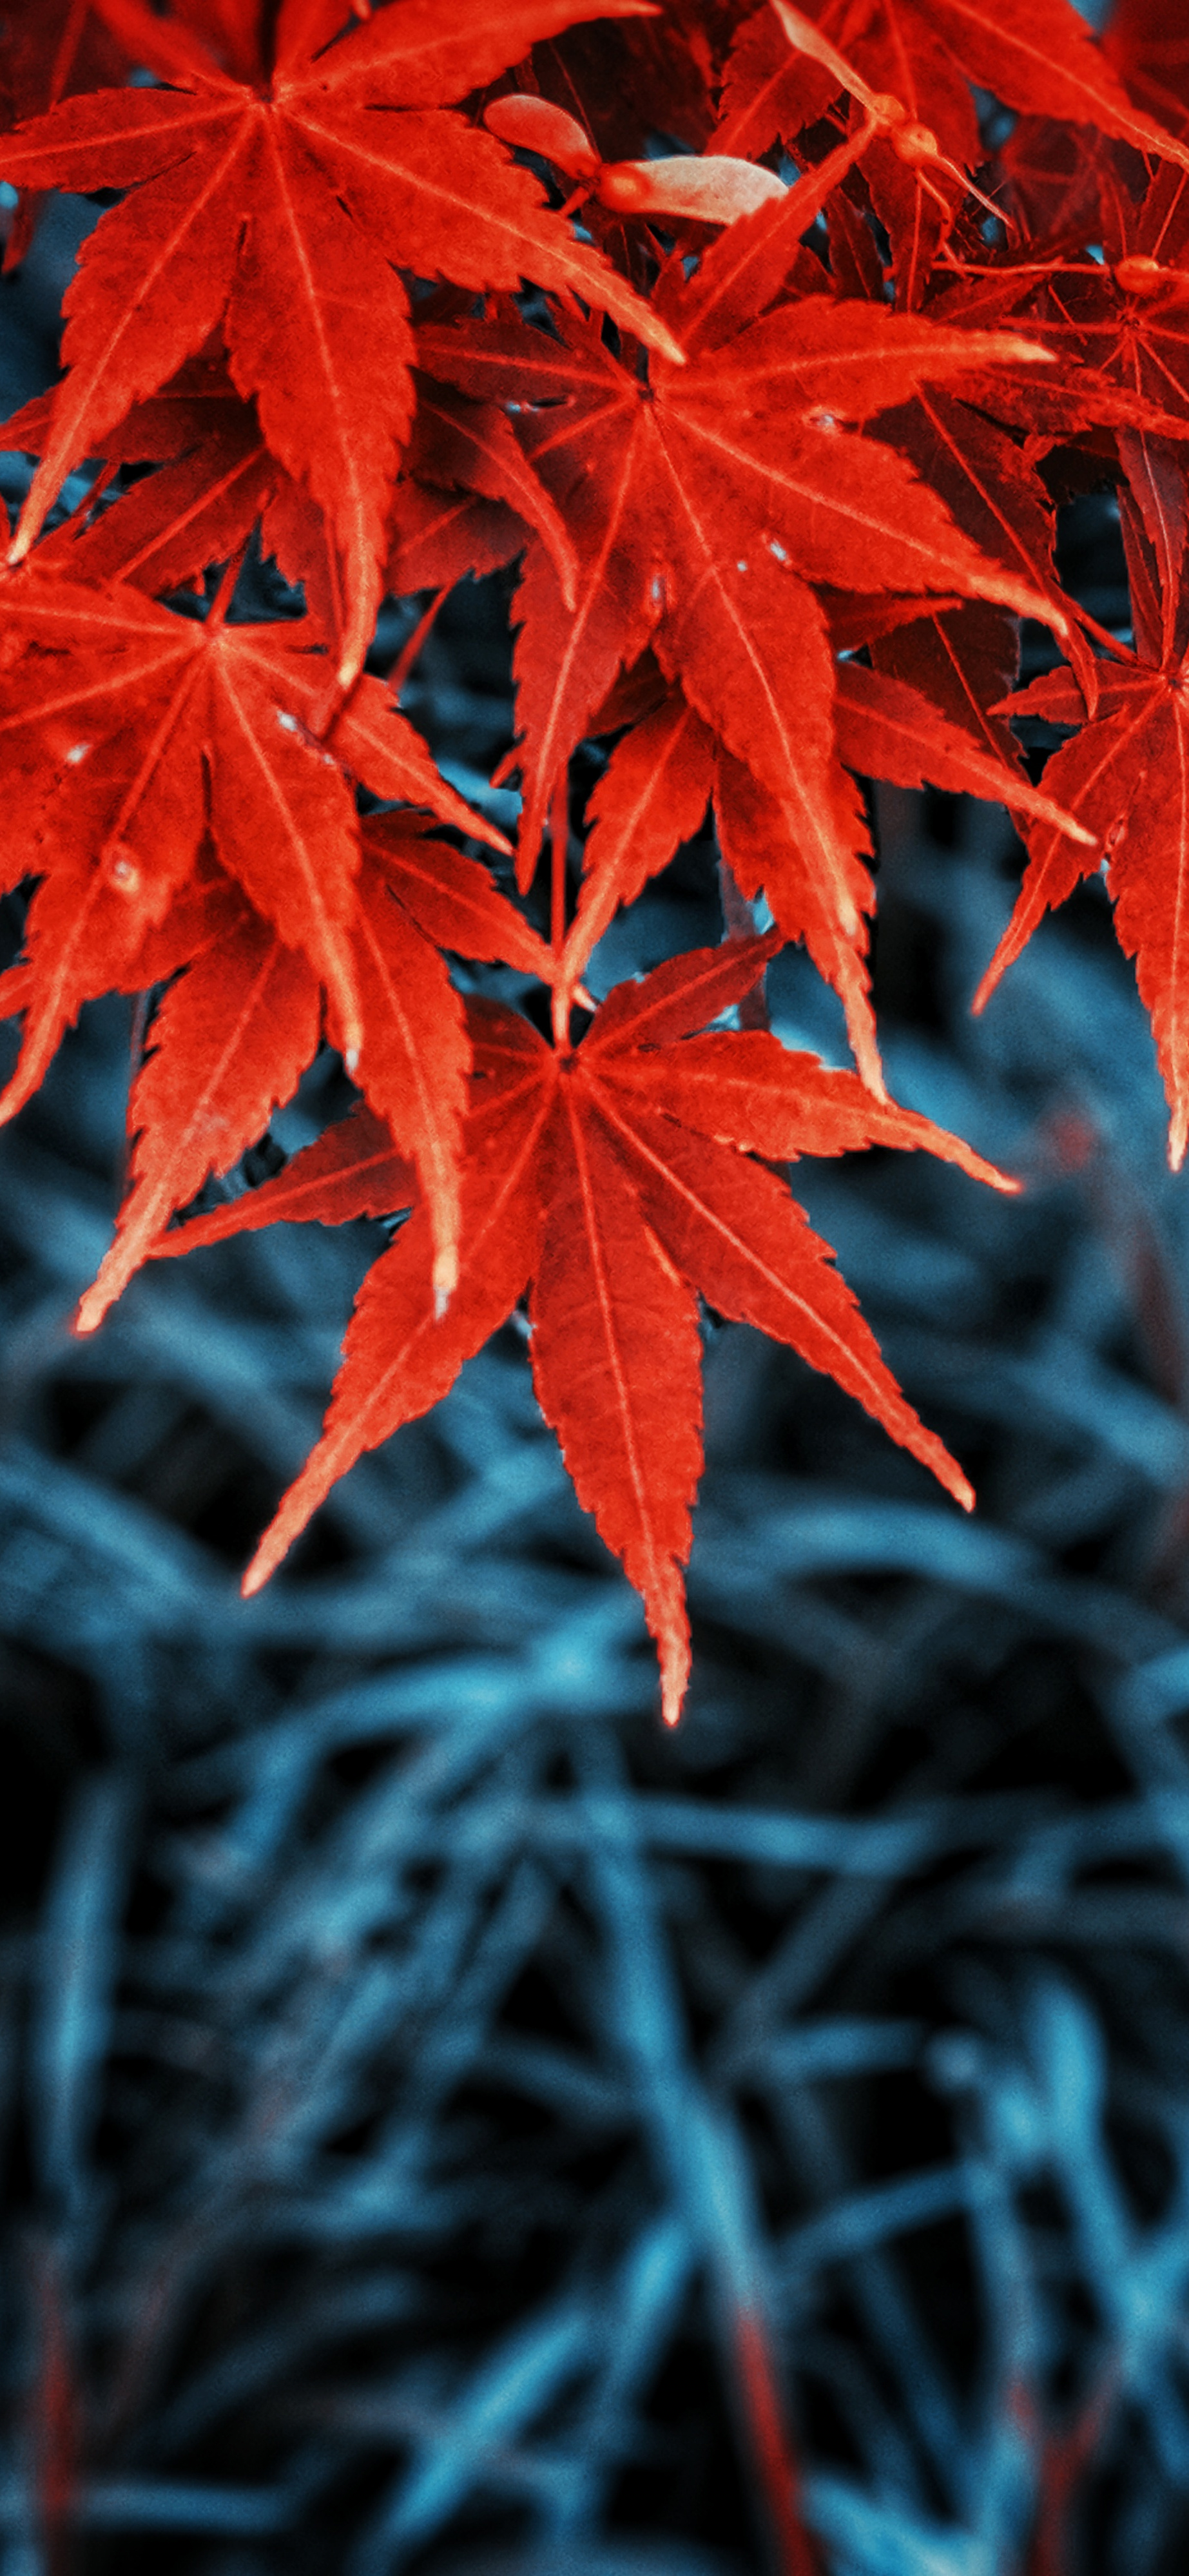 Fall leaves iPhone wallpaper wallsbyjfl 4